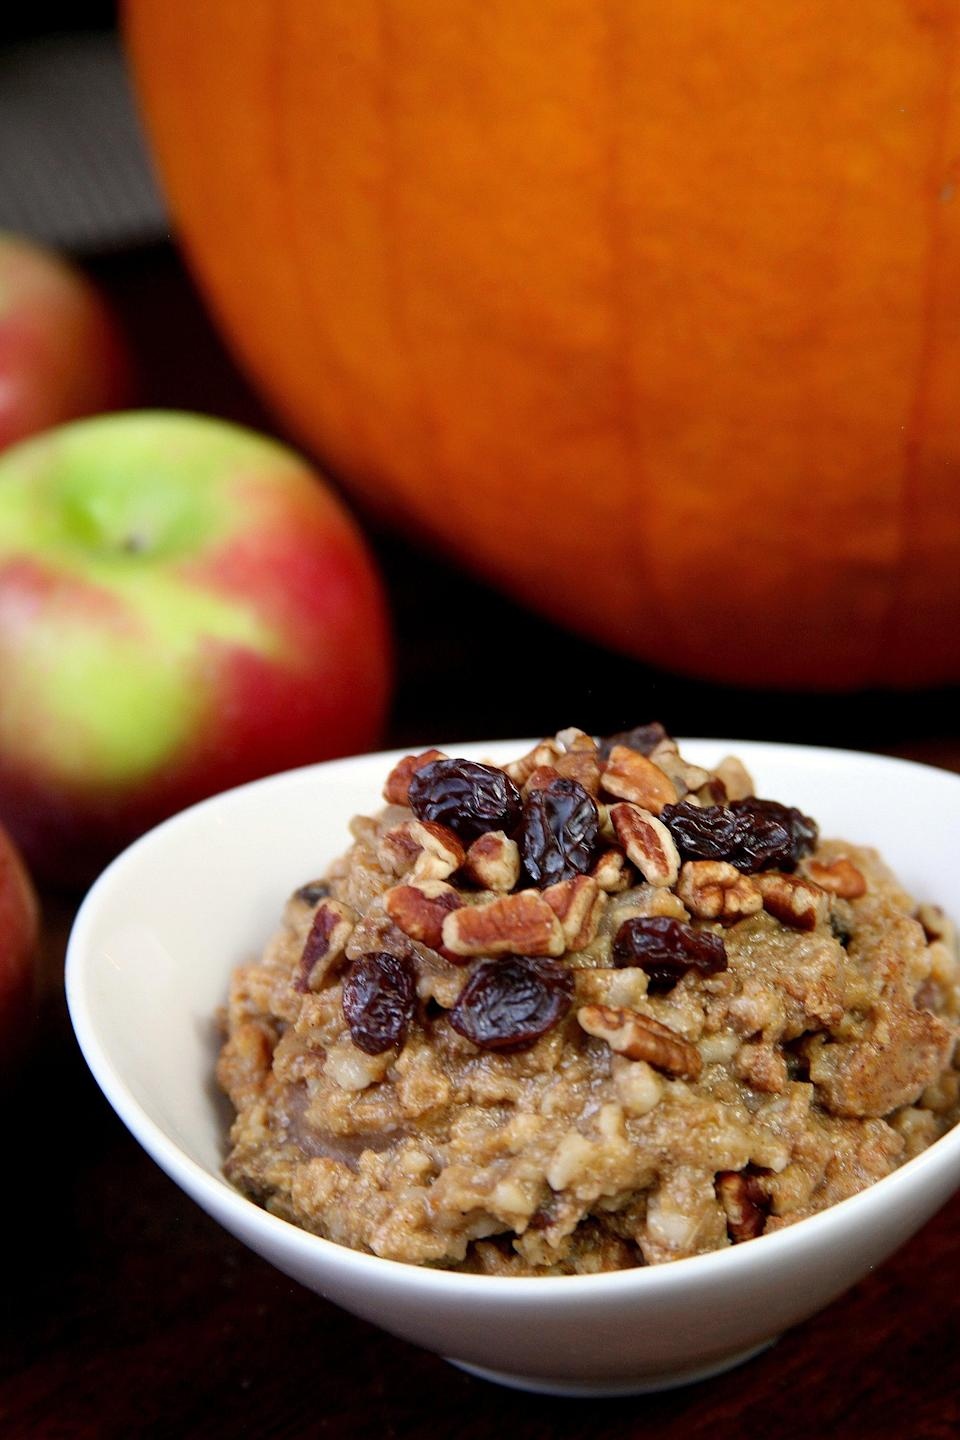 <p>To add natural sweetness and a creamy texture, add a few frozen discs of Trader Joe's Mashed Sweet Potatoes while cooking your oatmeal, or add them to your jar of overnight oats. </p>